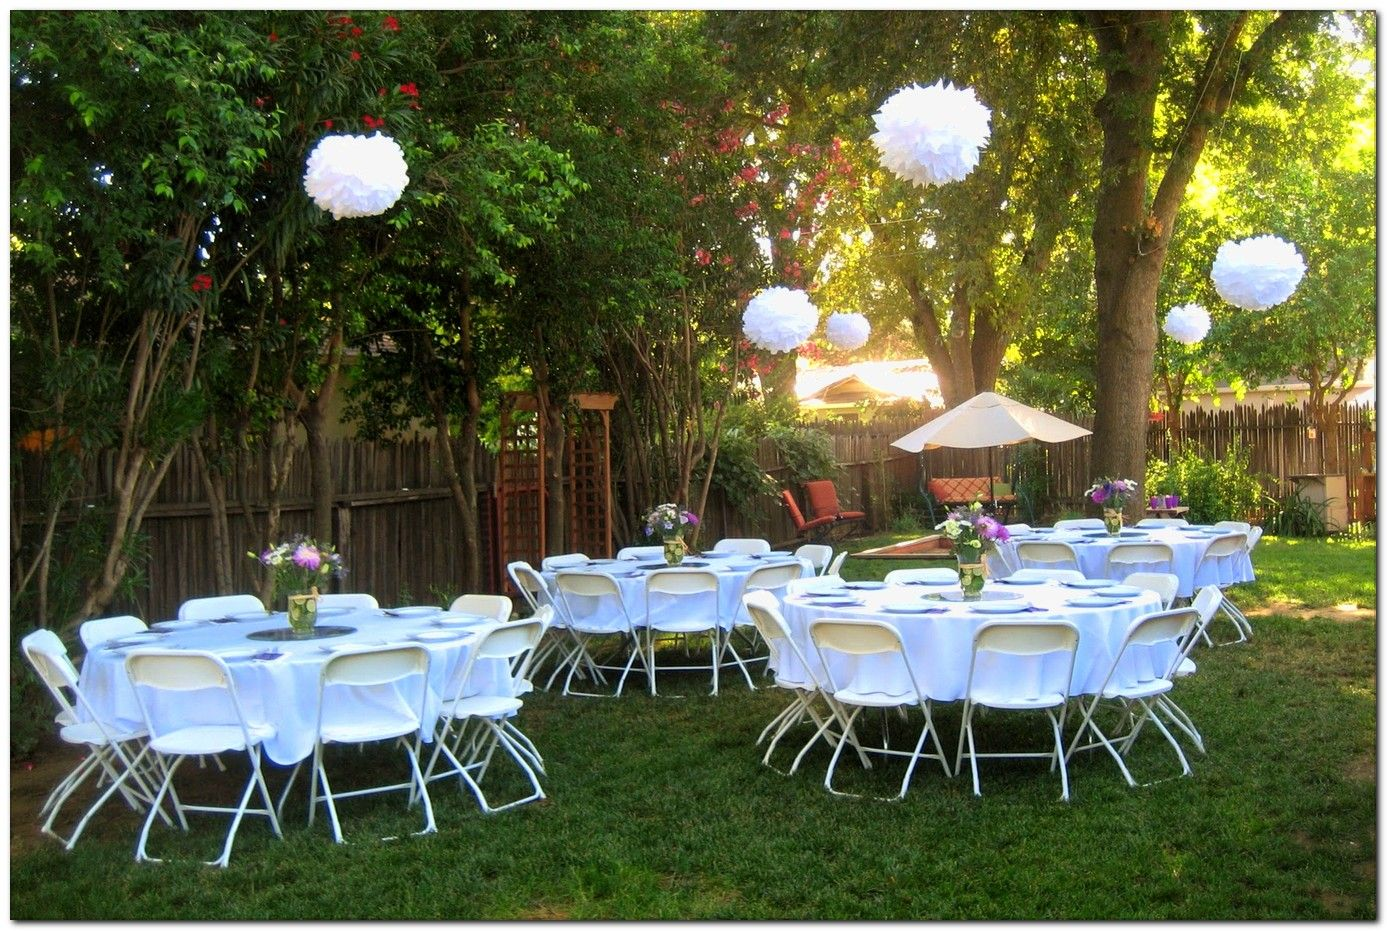 simple and lovely graduation party decoration idea - hanging